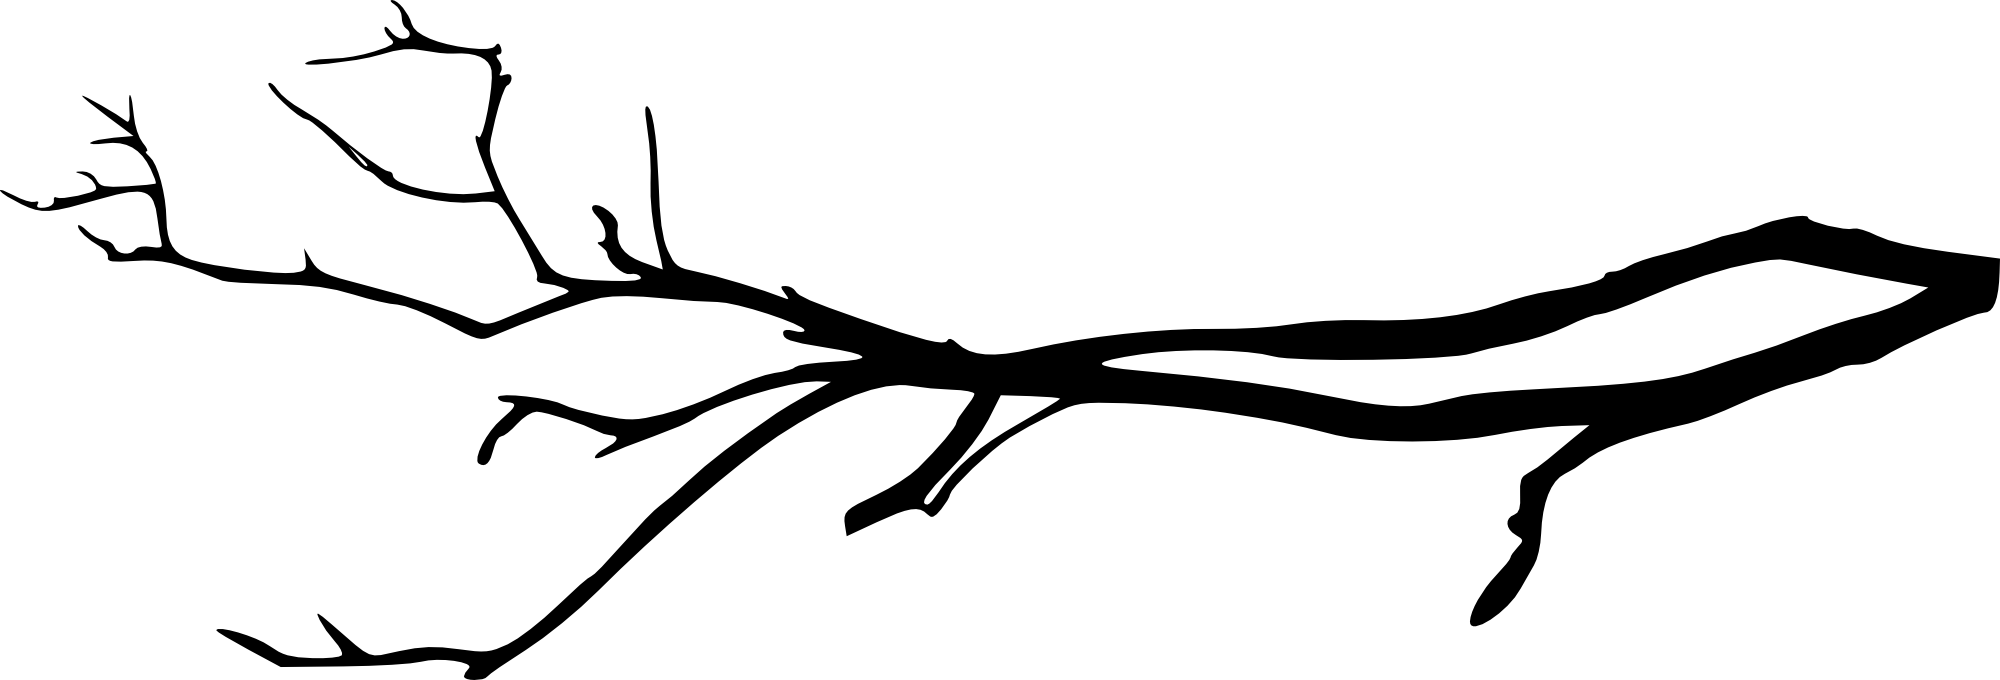 Free Download (simple-tree-branch-2.png) - Branch PNG